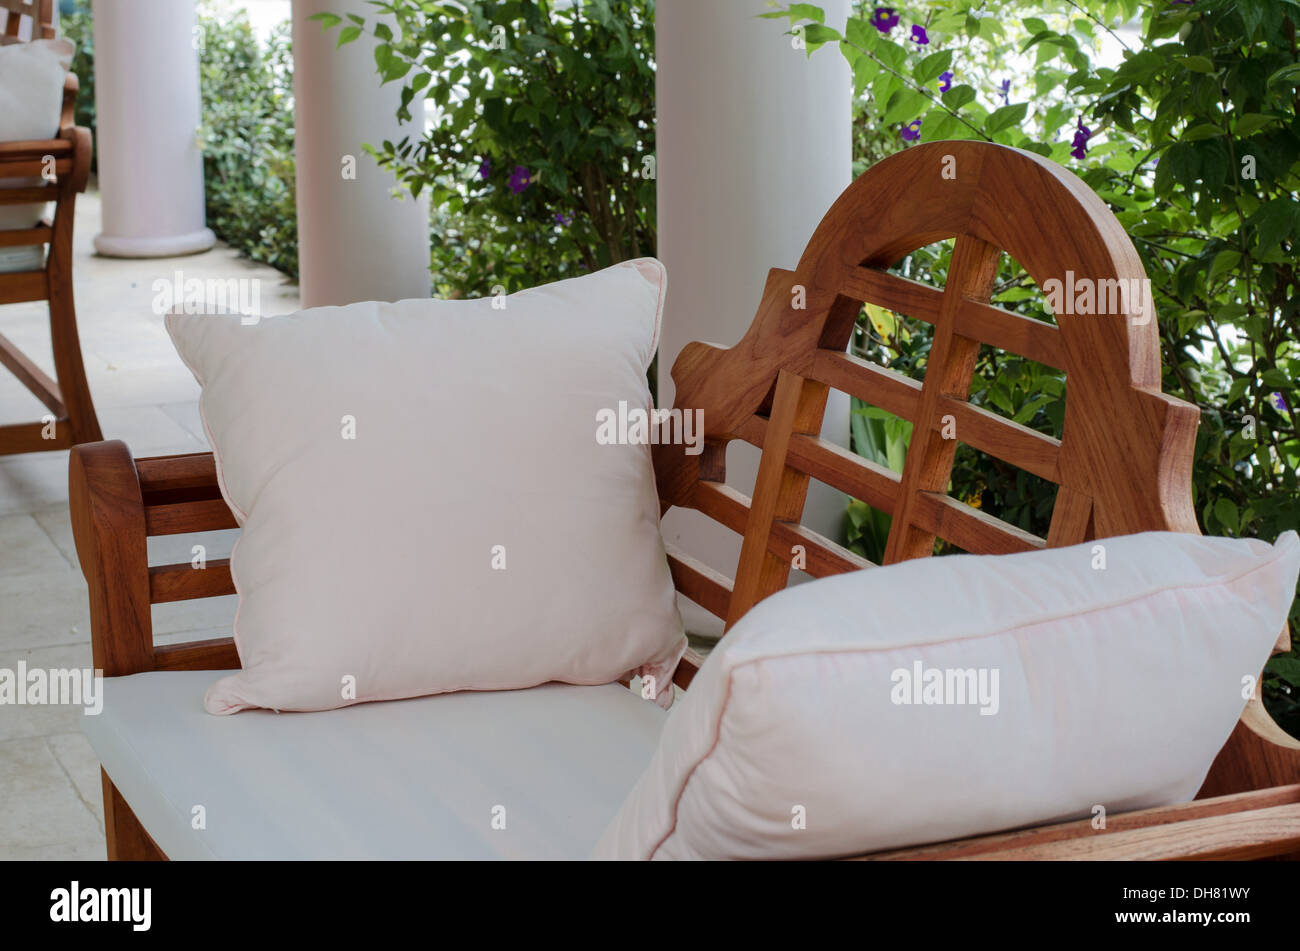 Swell Outdoor Wooden Bench With White Pillows Stock Photo Evergreenethics Interior Chair Design Evergreenethicsorg